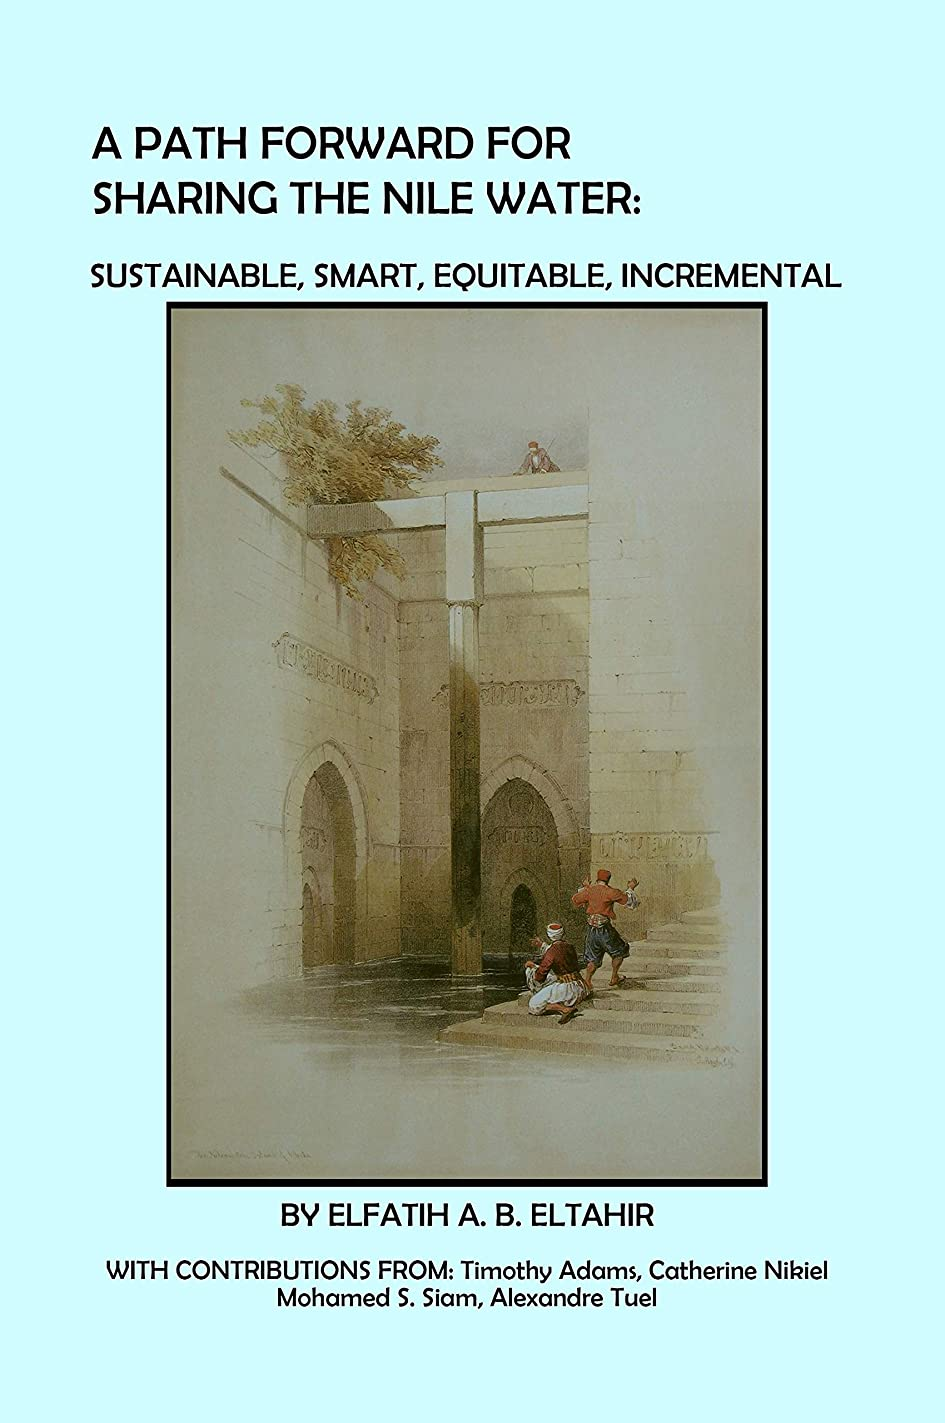 目を覚ます希少性従うA Path Forward for Sharing the Nile Water: Sustainable, Smart, Equitable, Incremental (English Edition)